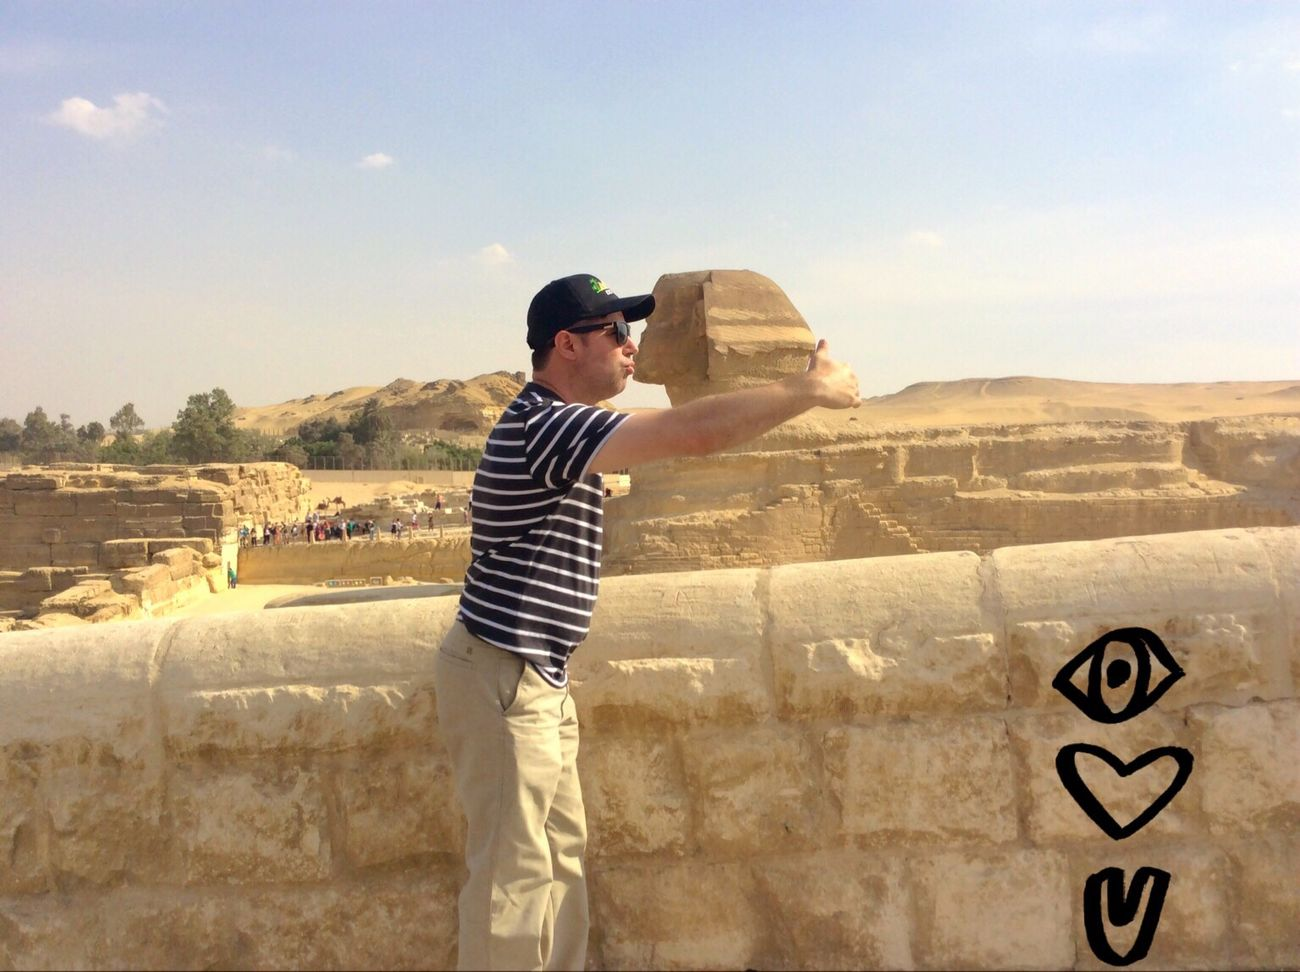 Funny Picture Funny Pictures Funny Pics Funny Kiss Sphynx Egypt Pyramids Pyramids At Giza Giza Adventure Hug Hug And Kiss Kisses Travel Photography Vacation Photos   Vacation Traveling Fun Travel That's Me Check This Out Enjoying Life